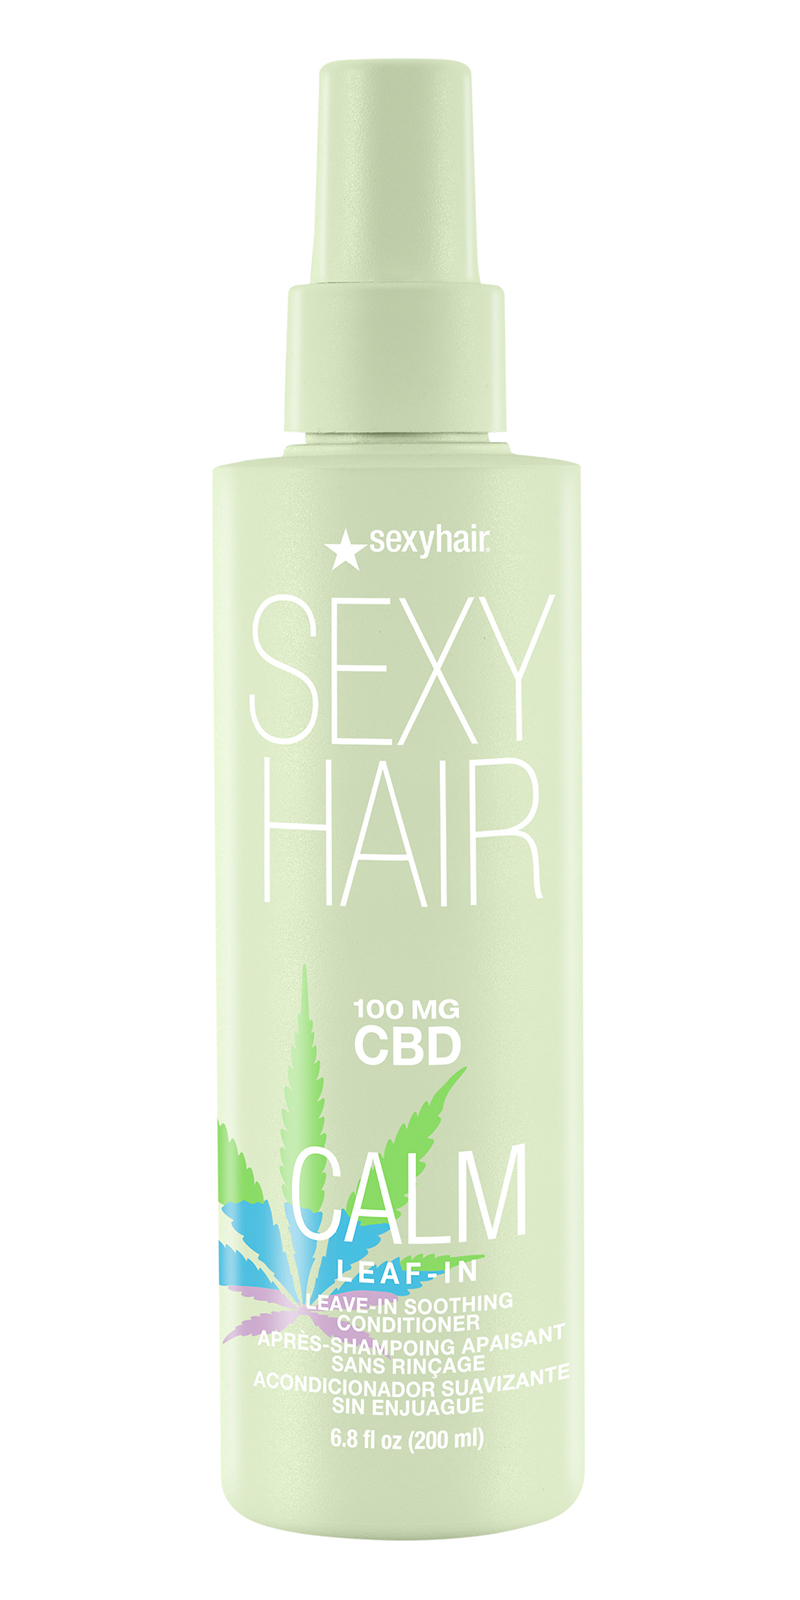 Featured Image for Product Leaf-In Leave-In Soothing Conditioner with 100mg CBD